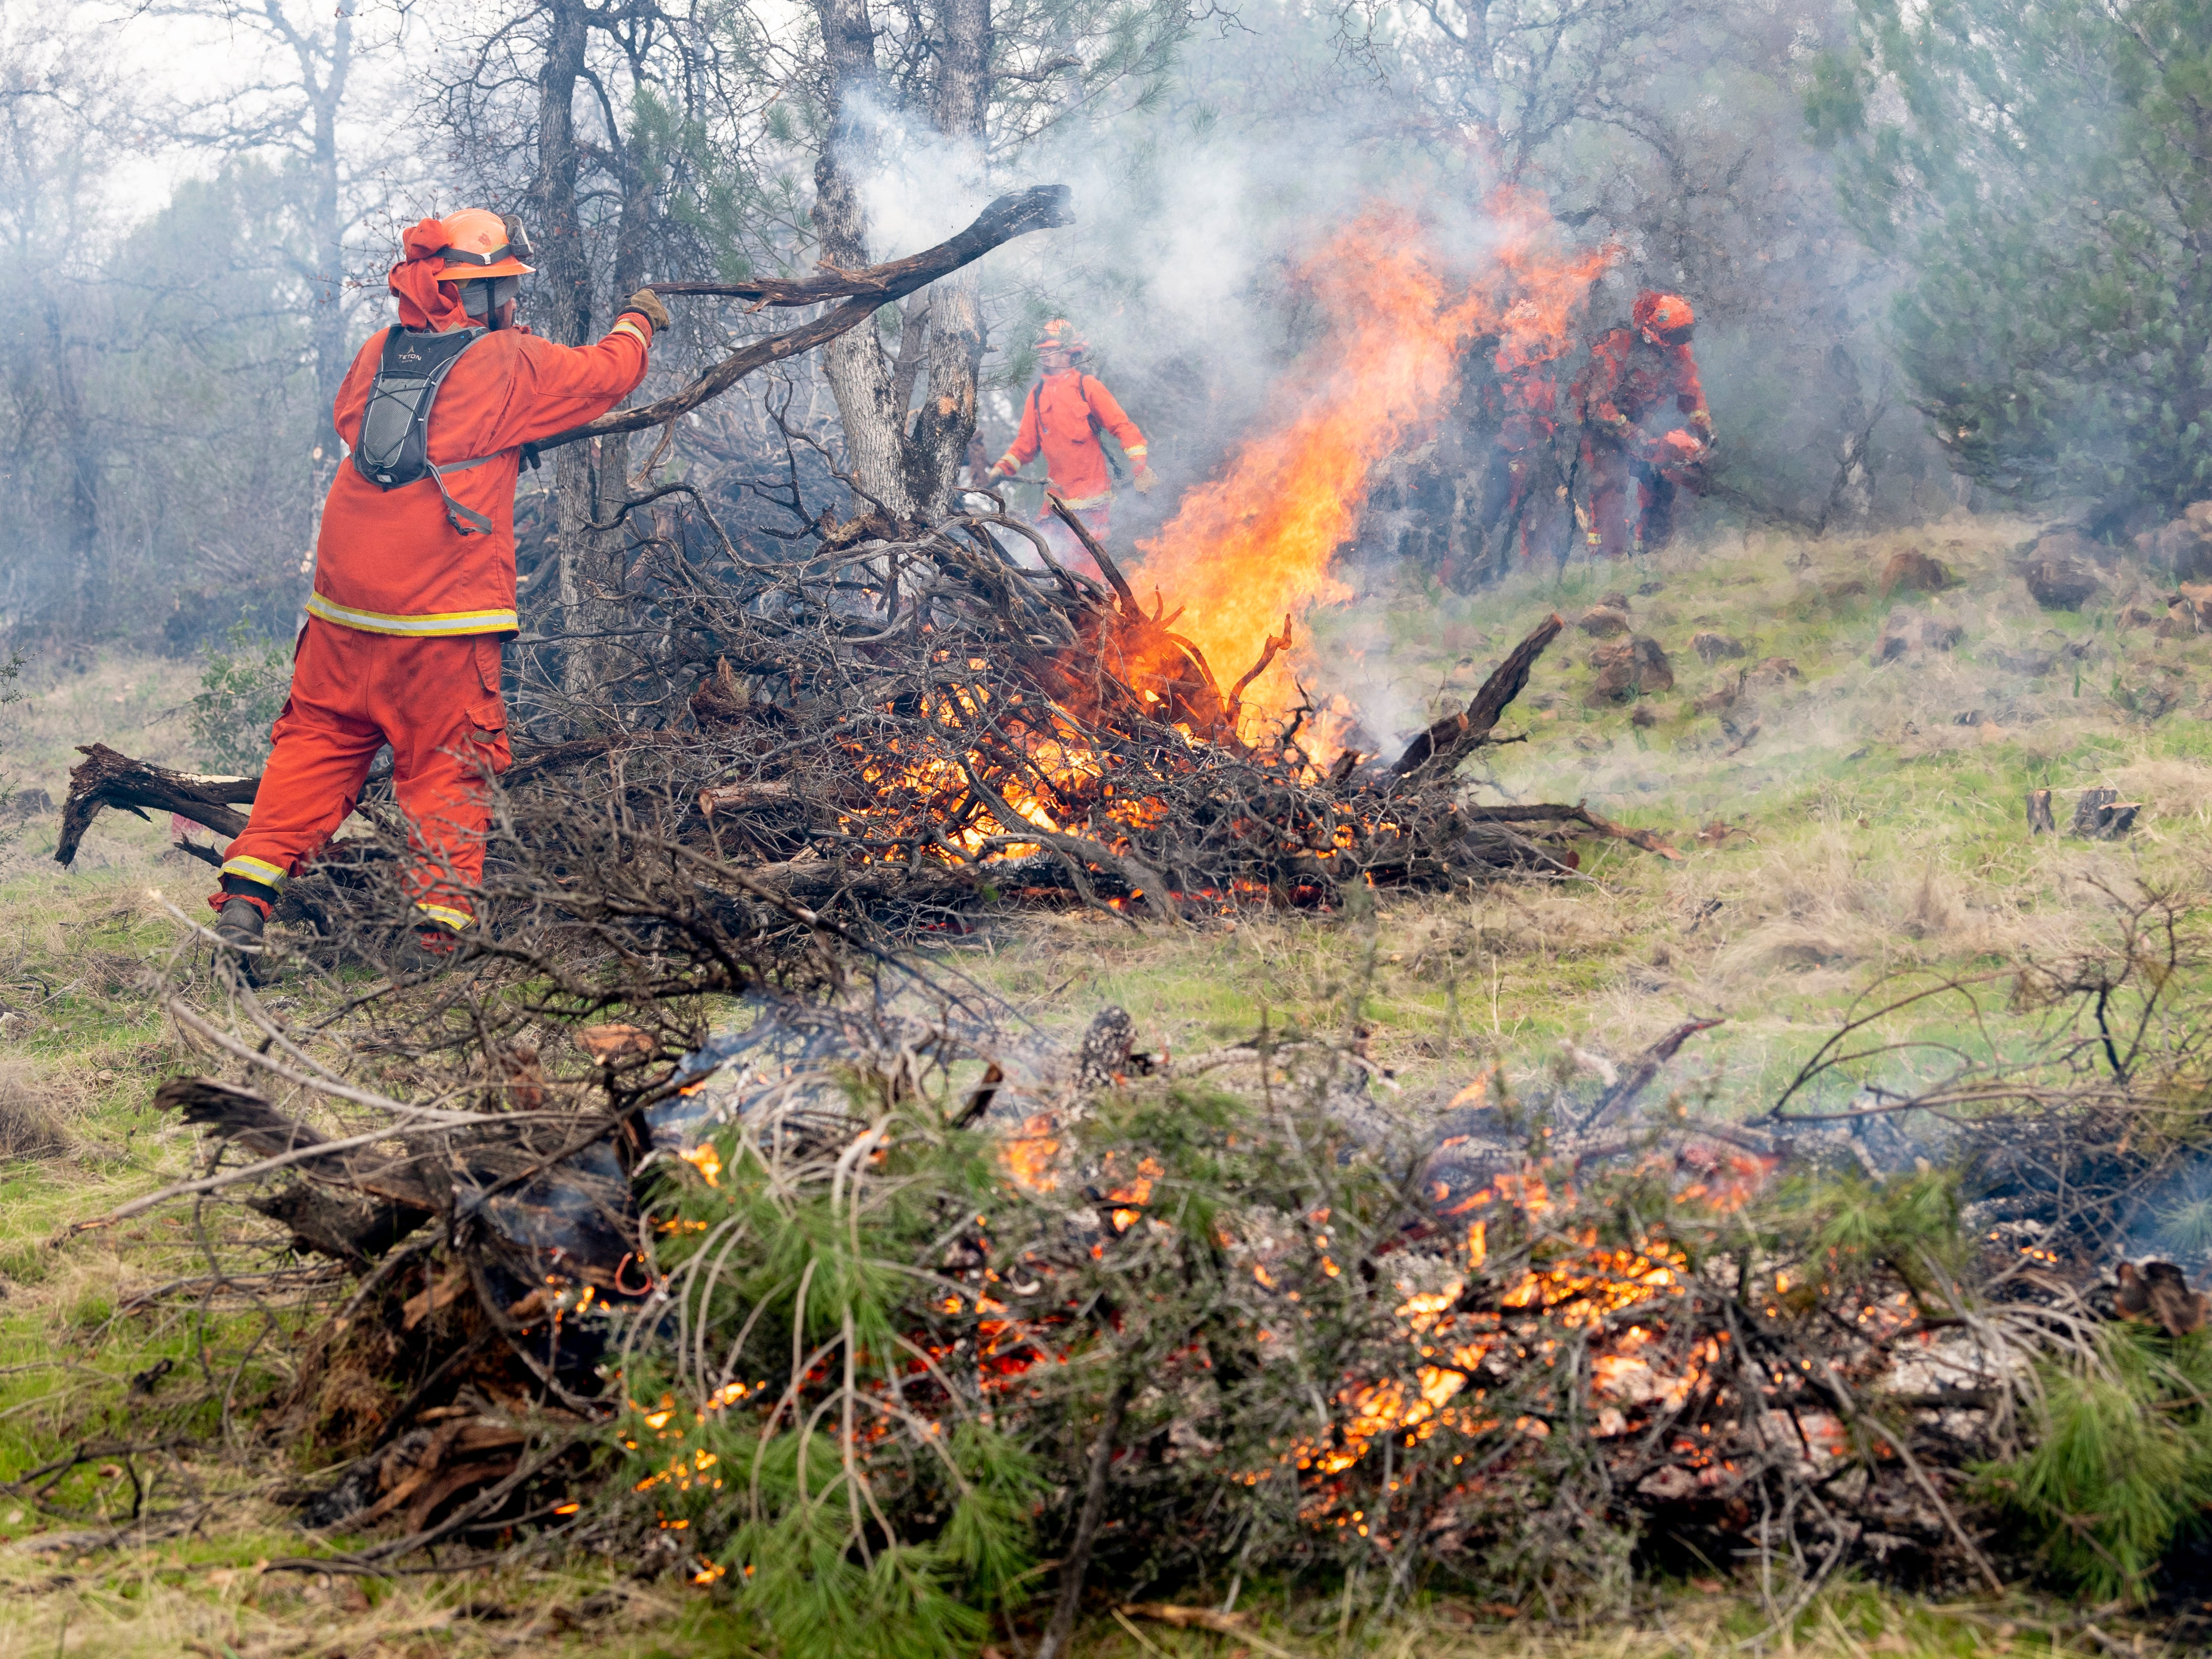 Sugar Pine Conservation Camp inmates collect and burn brush in a greenbelt located in between residential areas in west Redding on Wednesday, Feb. 6, 2019.